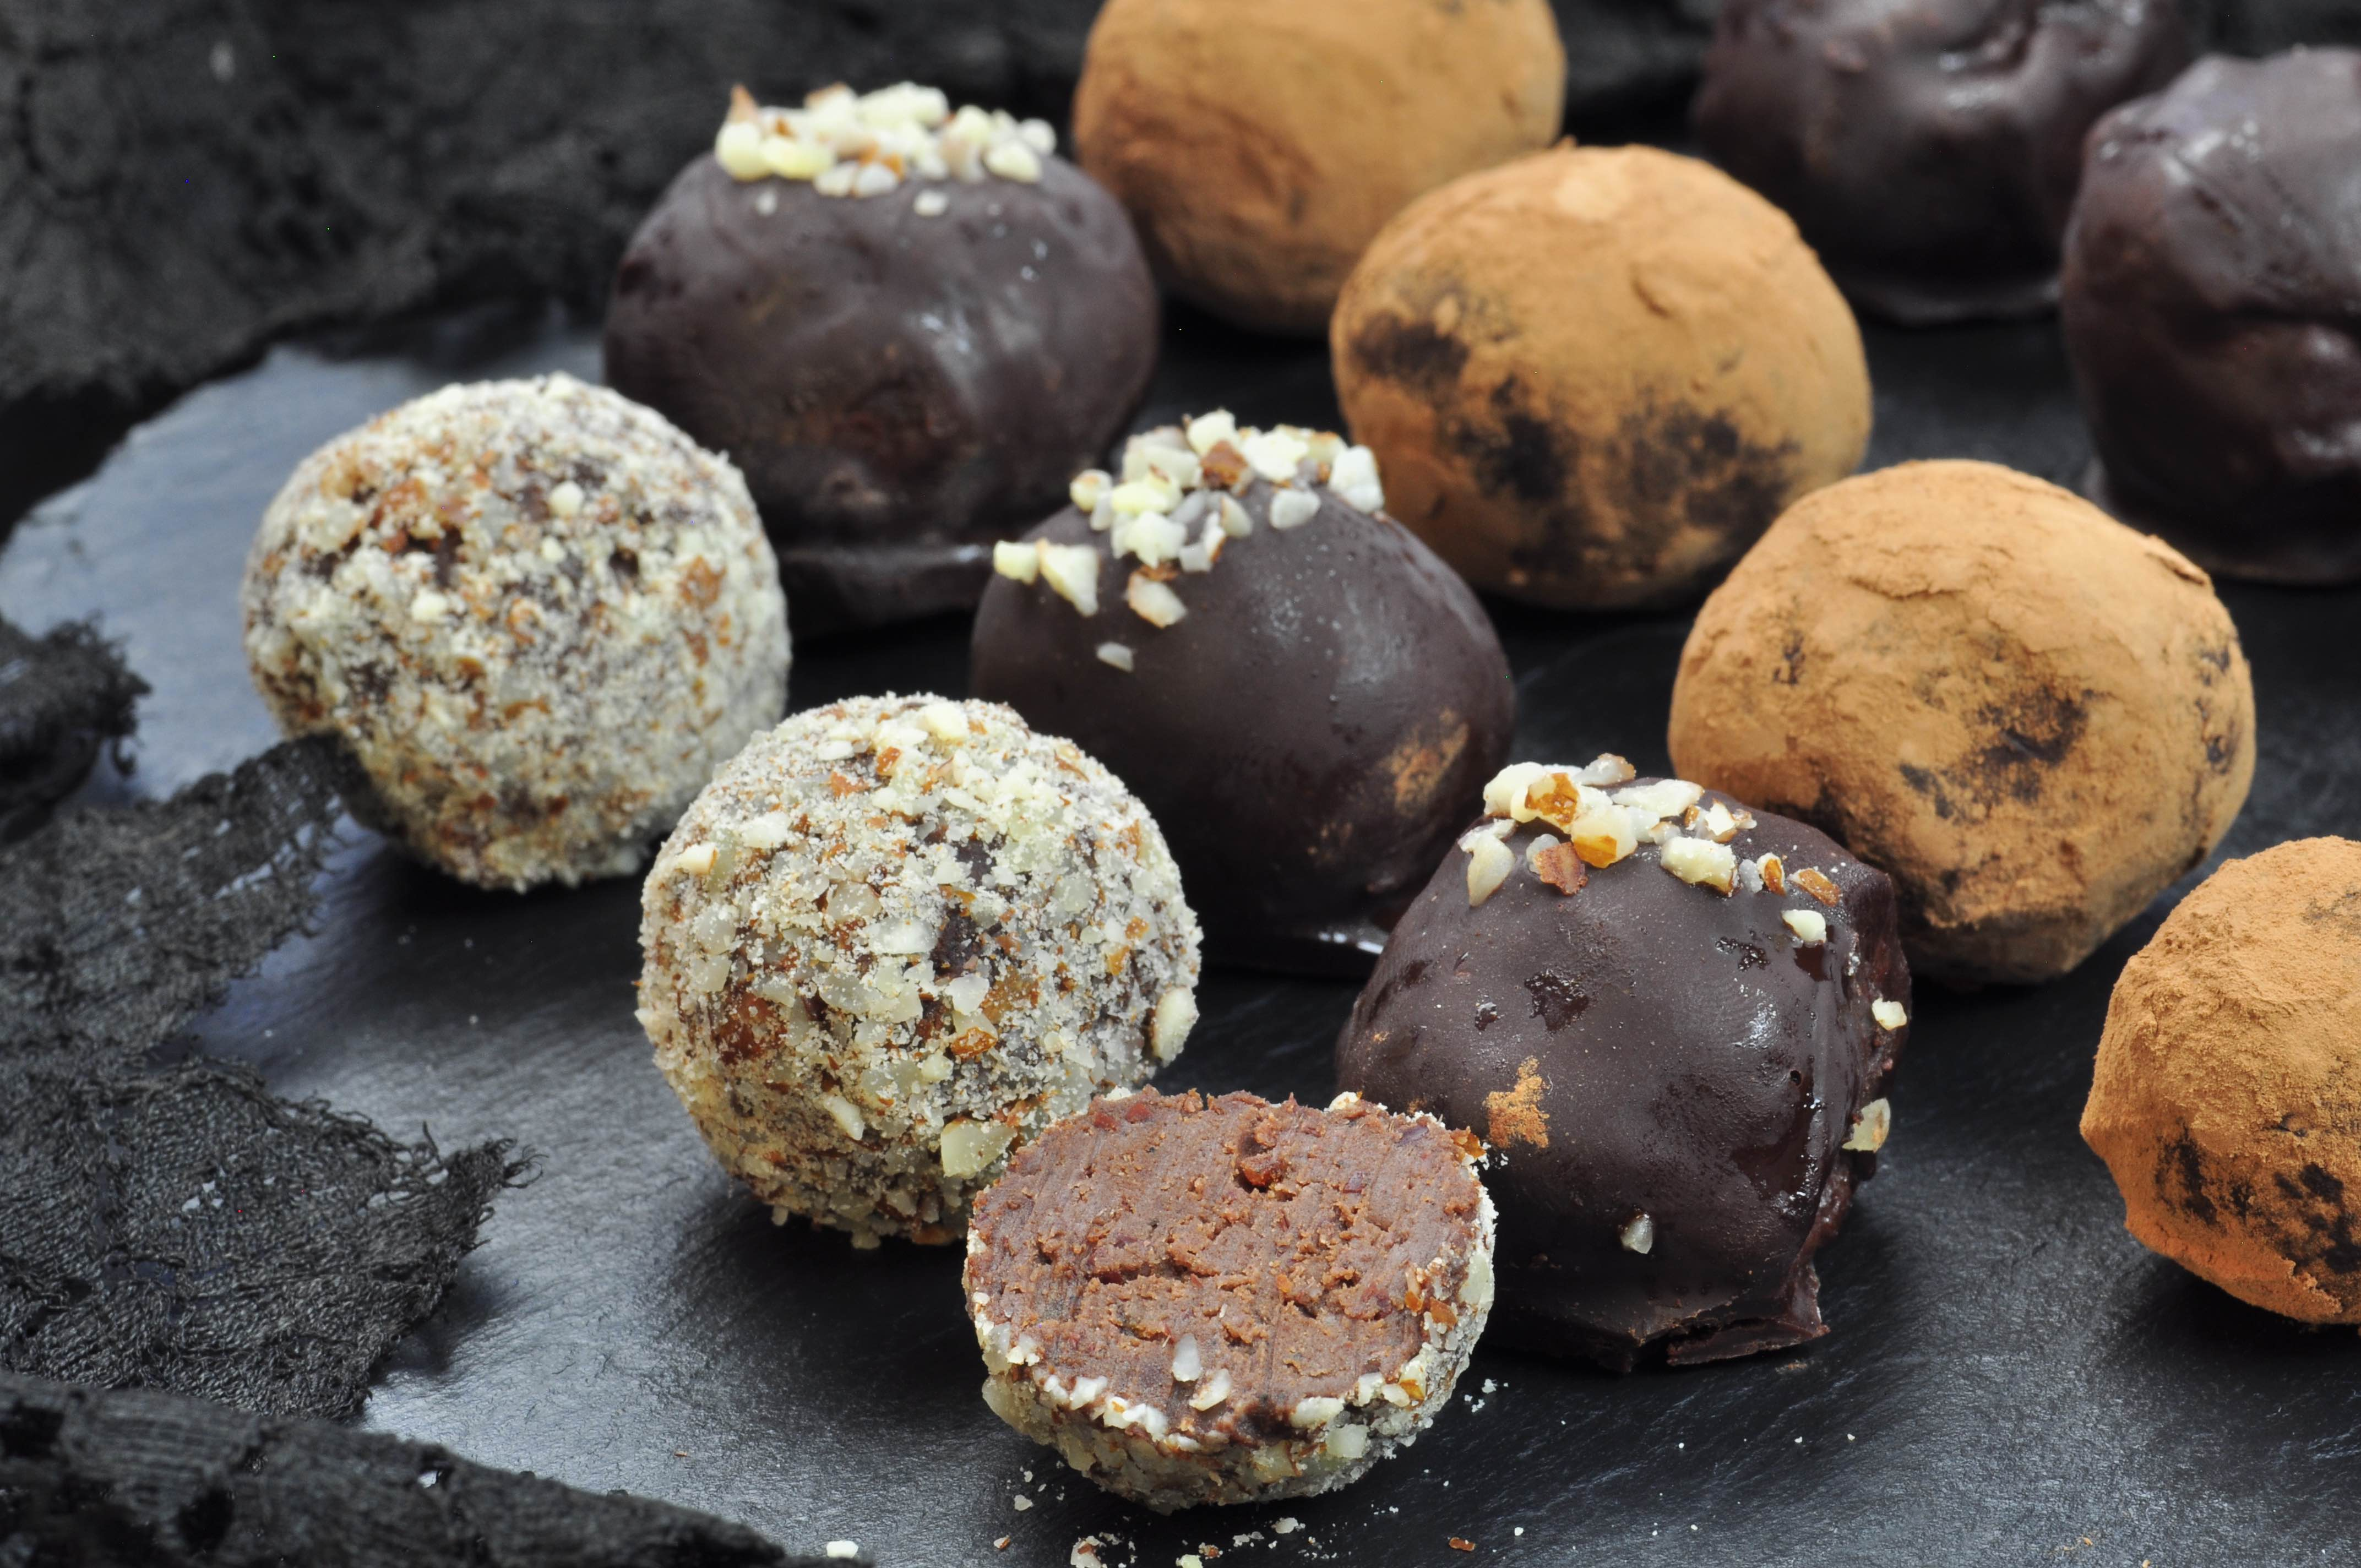 Chocolate_truffles_with_kidney_beans_and+white_miso